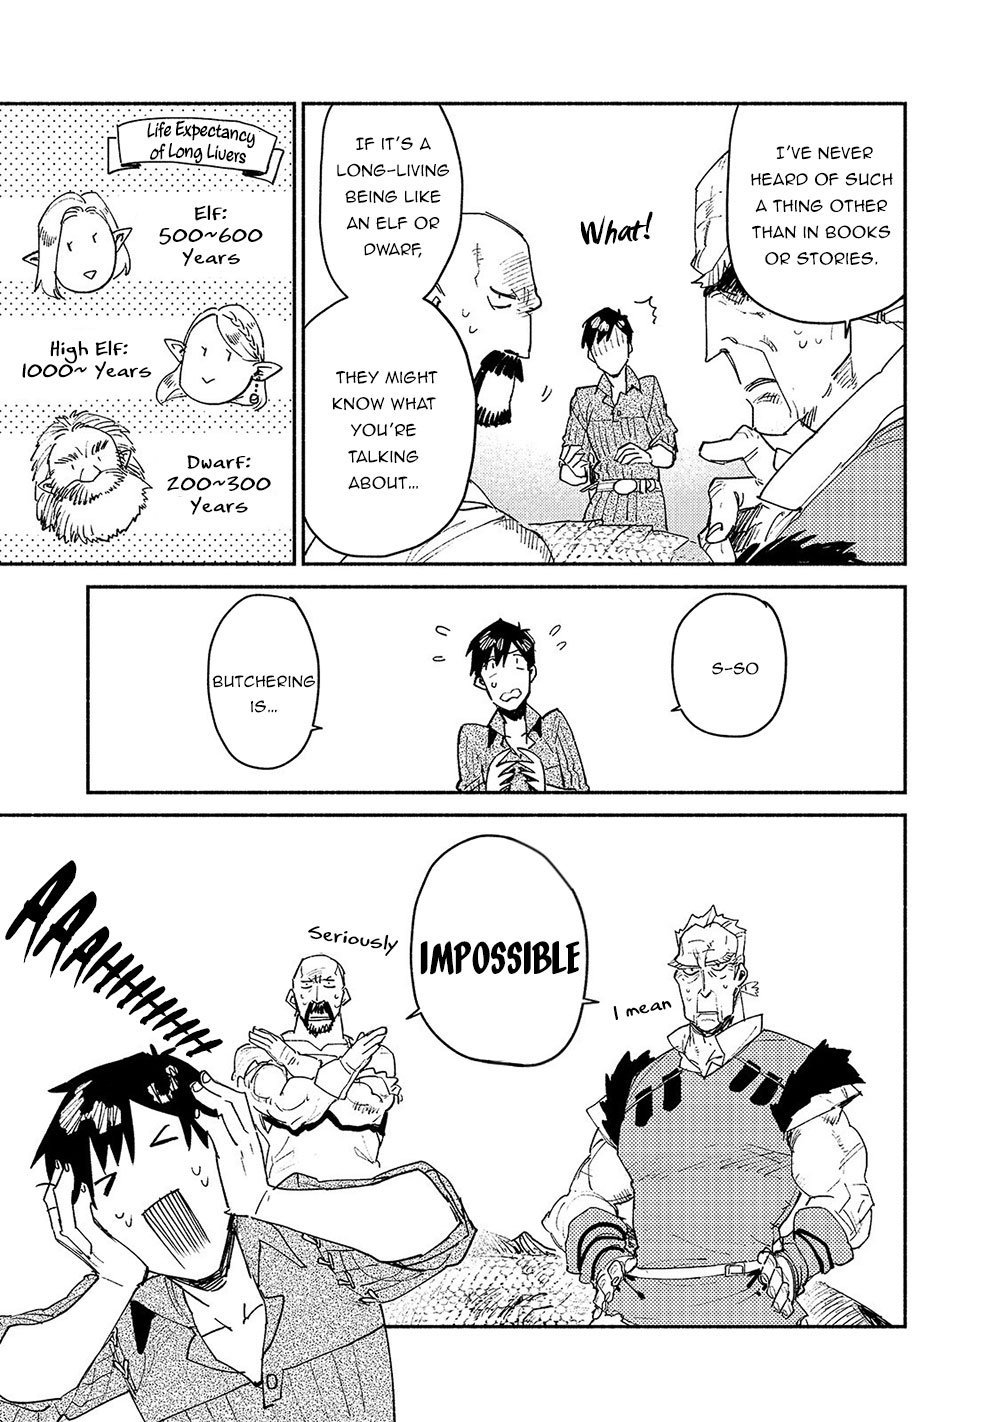 Manga Regarding the Display of an Outrageous Skill Which Has Incredible Powers - Chapter 33 Page 6